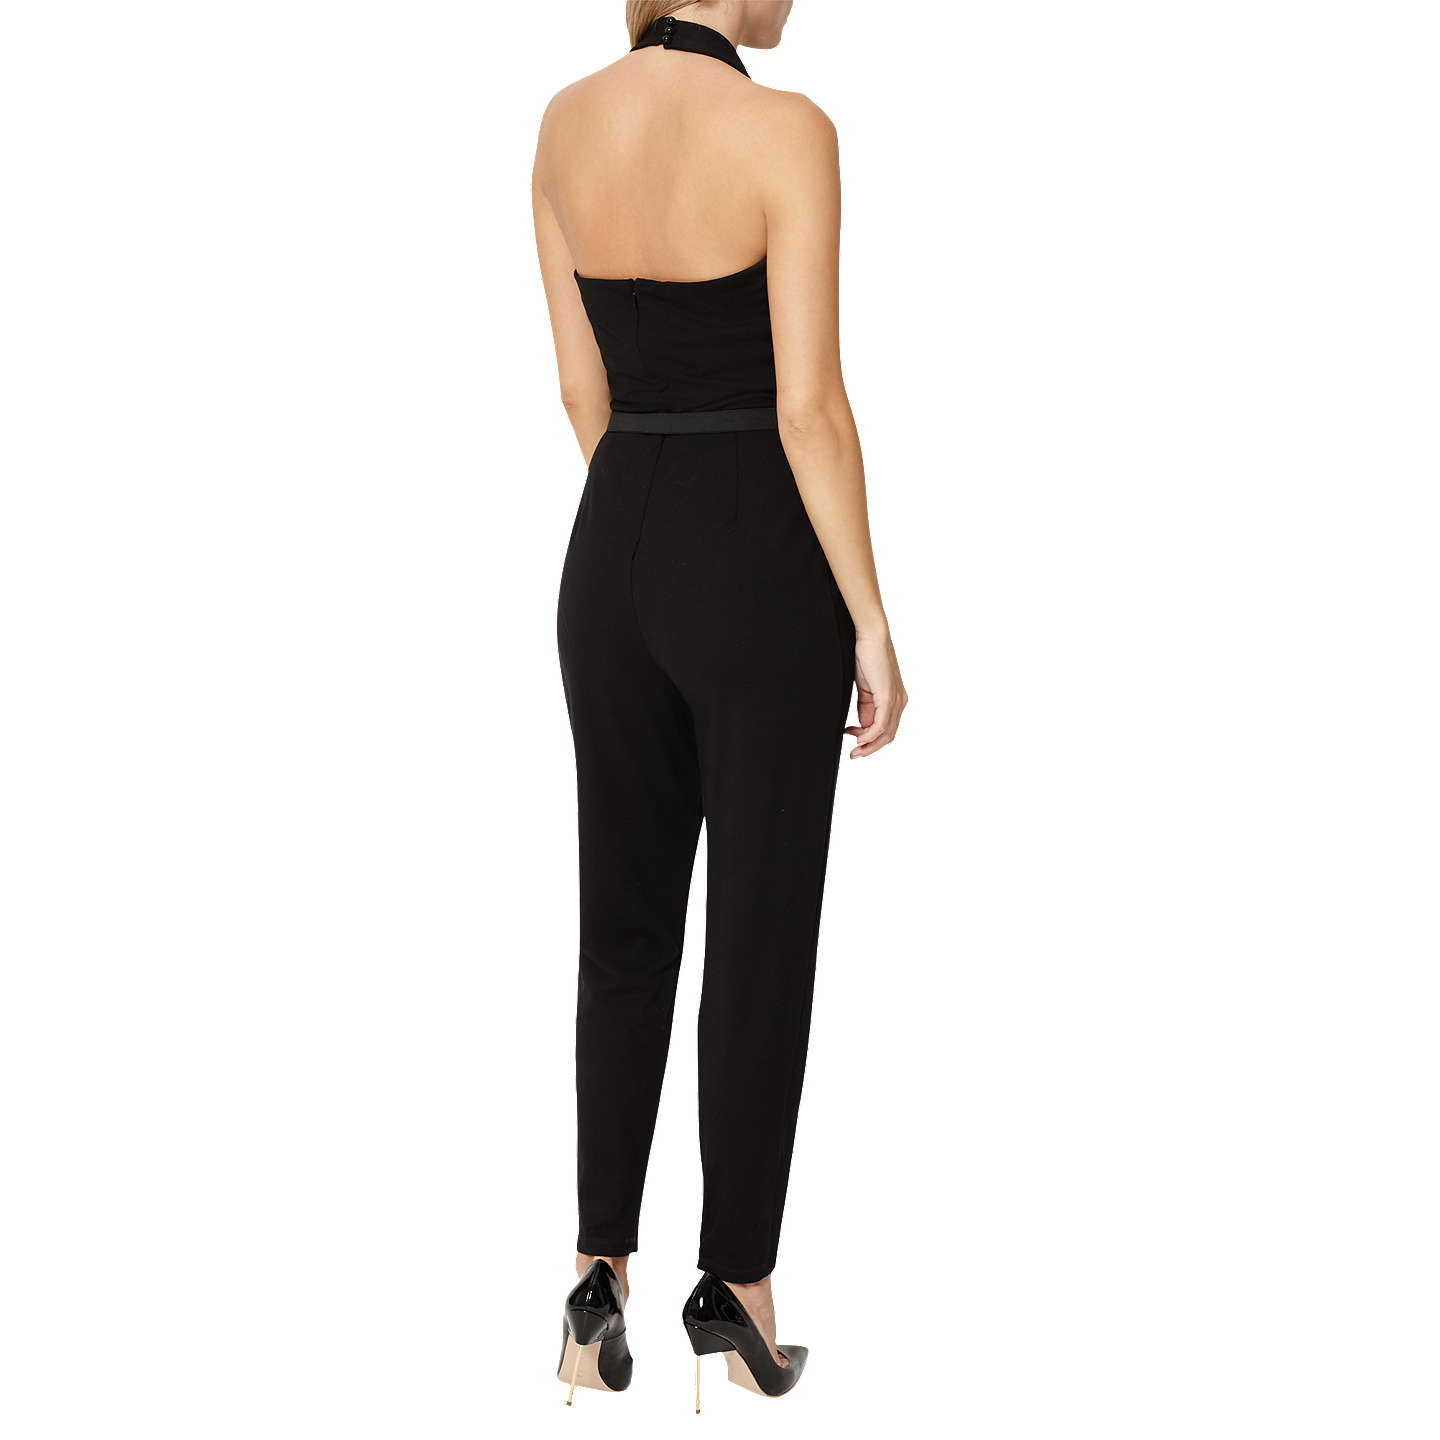 BuyDamsel in a dress Halterneck Jumpsuit, Black, 18 Online at johnlewis.com